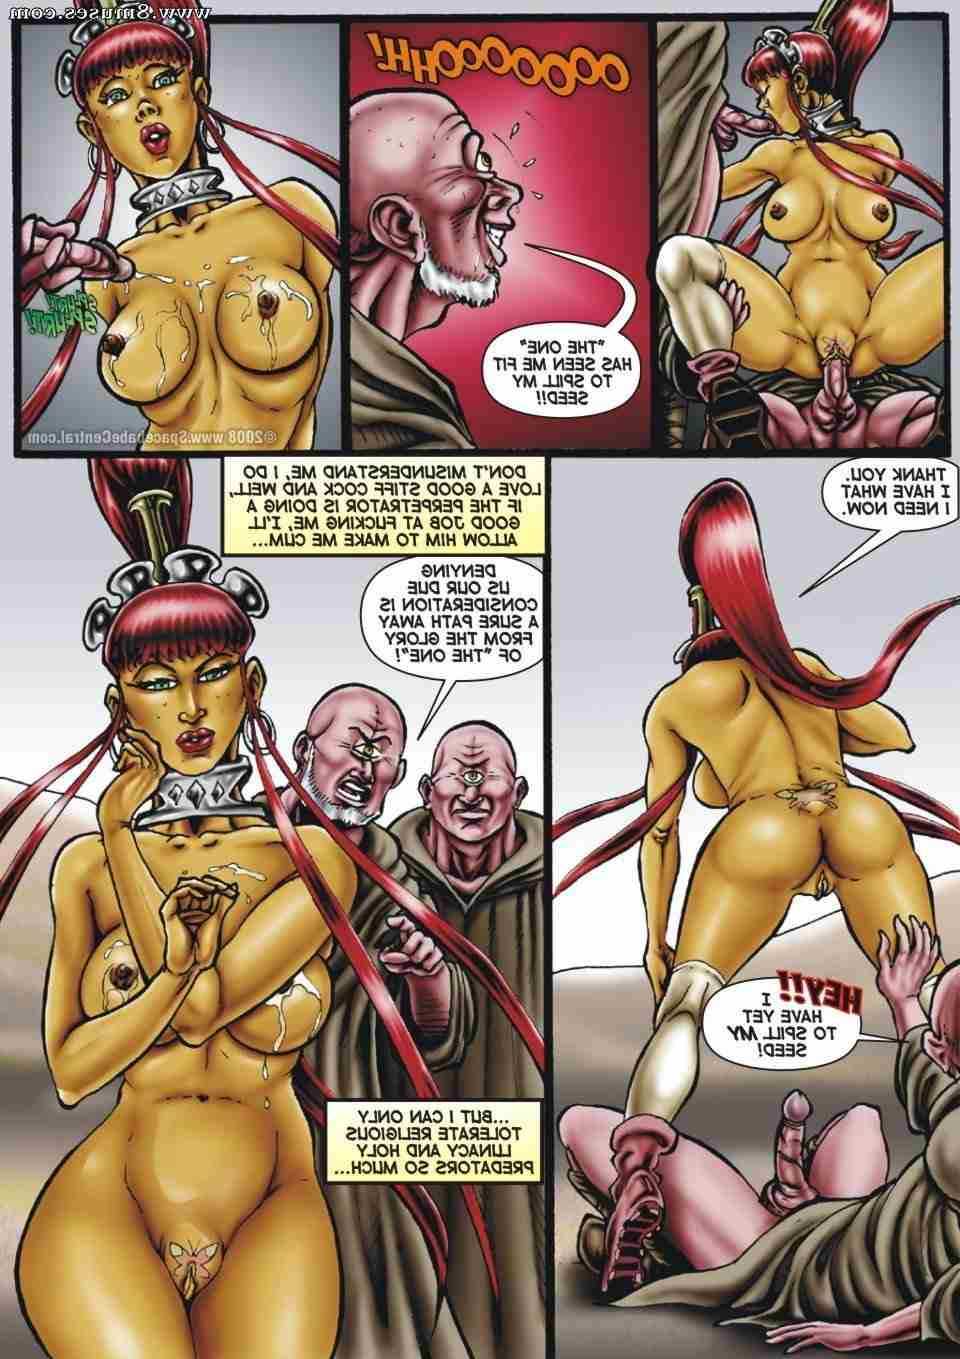 Central-Comics/Space-Babe-Central/Alien-Huntress Alien_Huntress__8muses_-_Sex_and_Porn_Comics_14.jpg